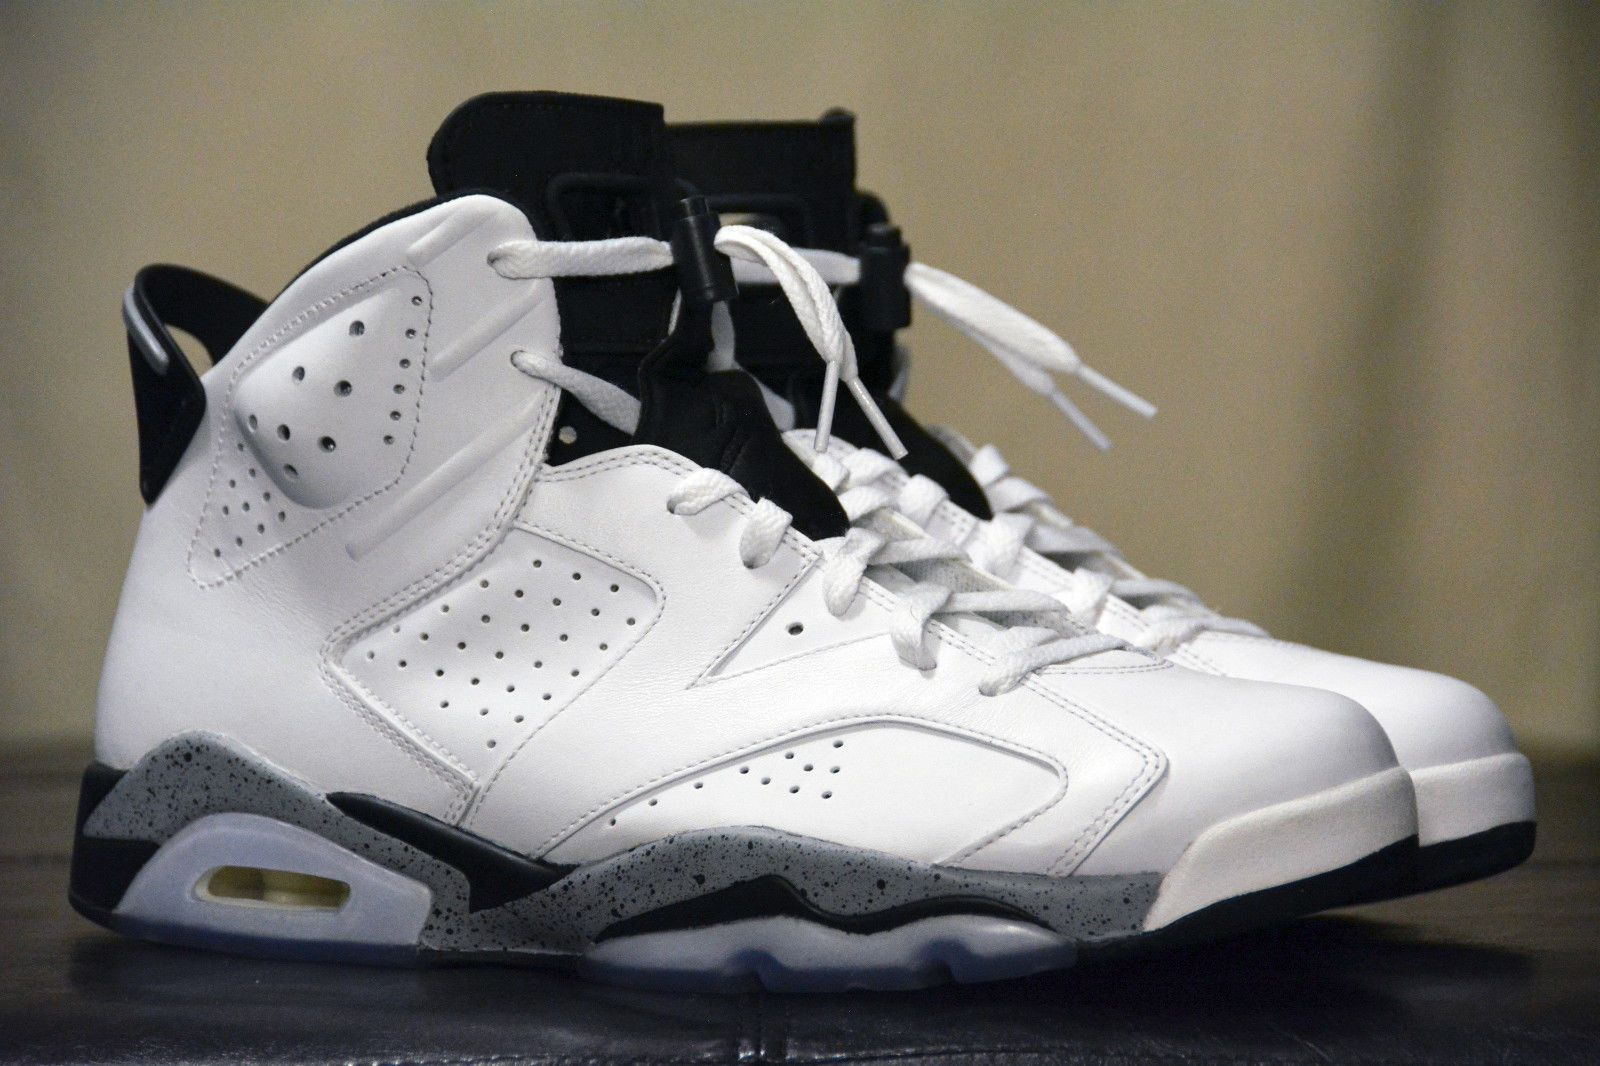 453658d38dd56 Jordan 6 Retro Cement Oreo Custom Size 11 5 1 of 1 Infrared OVO 23 GMP DMP  Rings